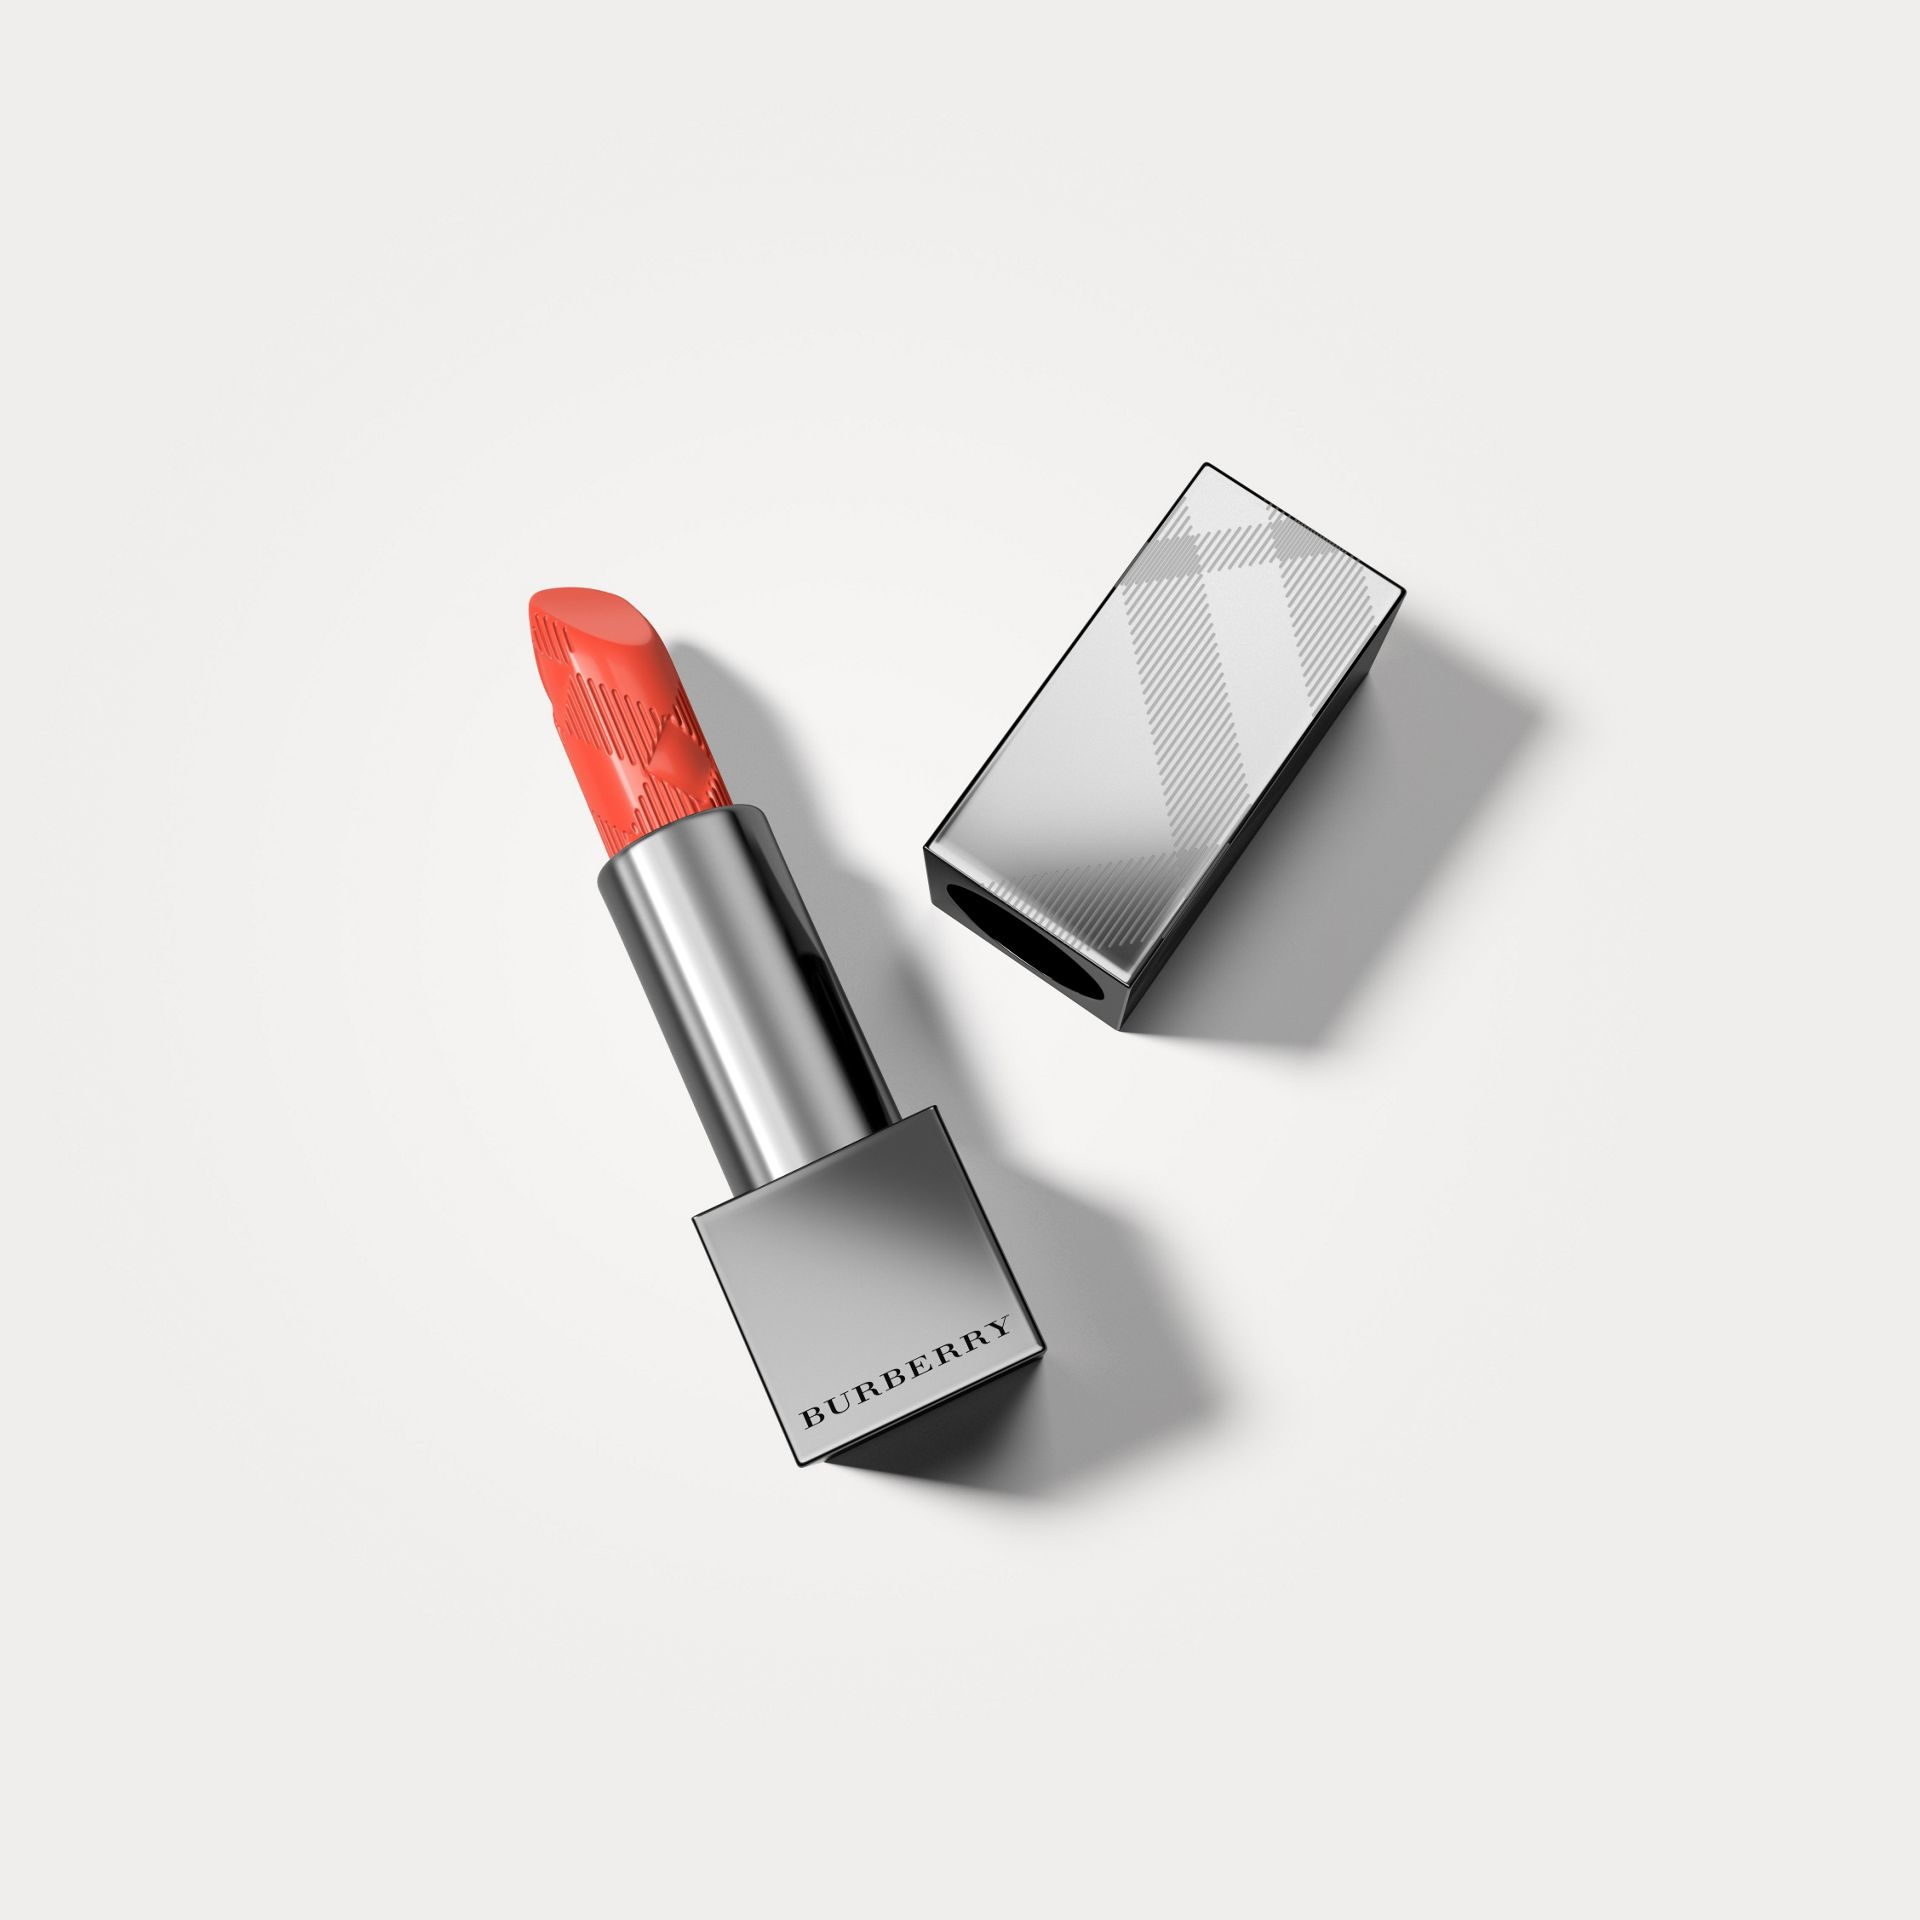 Bright coral 73 Burberry Kisses - Bright Coral No.73 - immagine della galleria 1